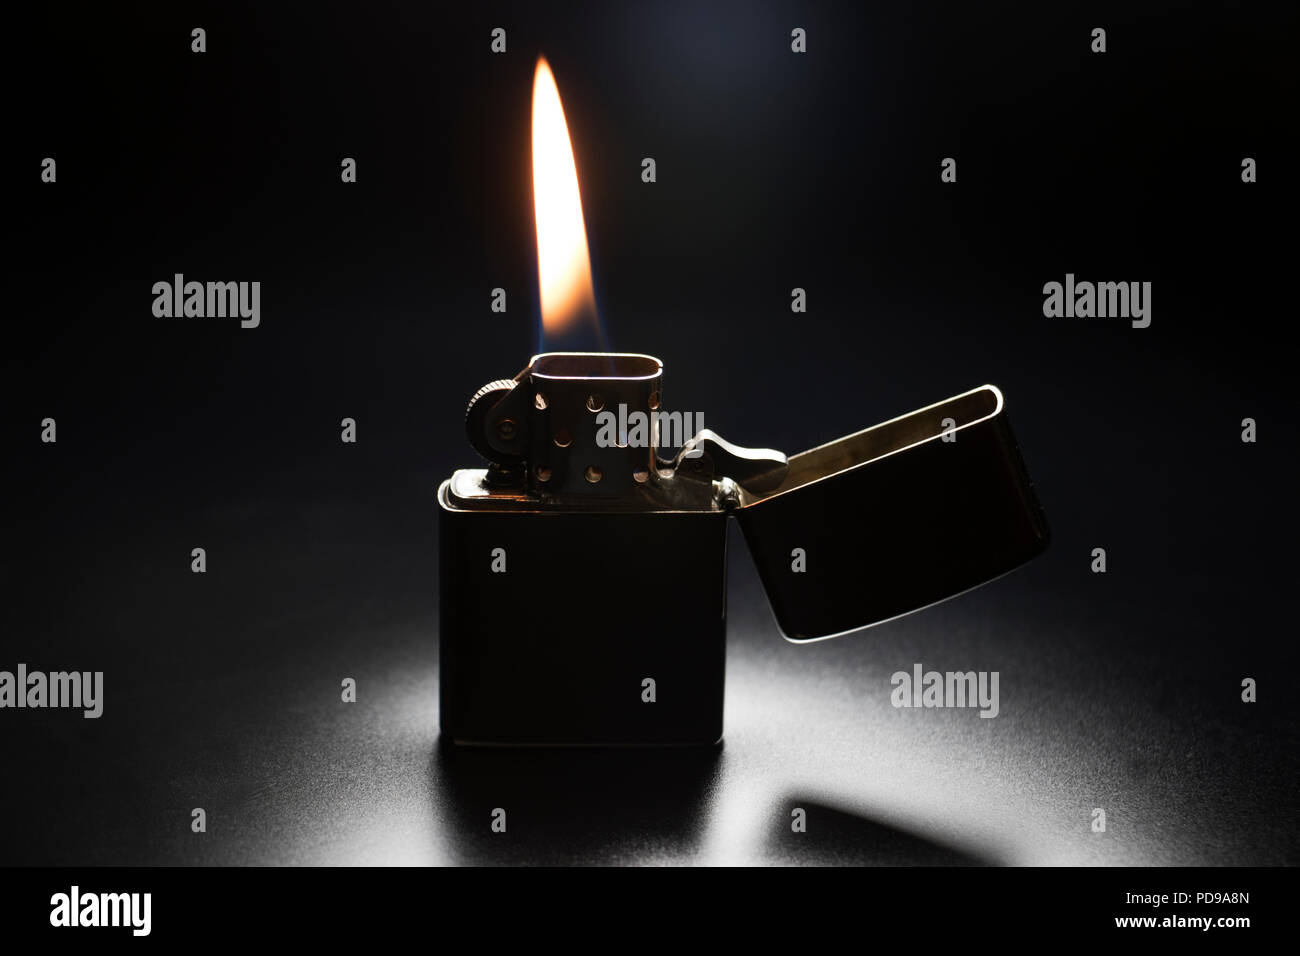 Zippo lighter with yellow flame isolated on black background. - Stock Image